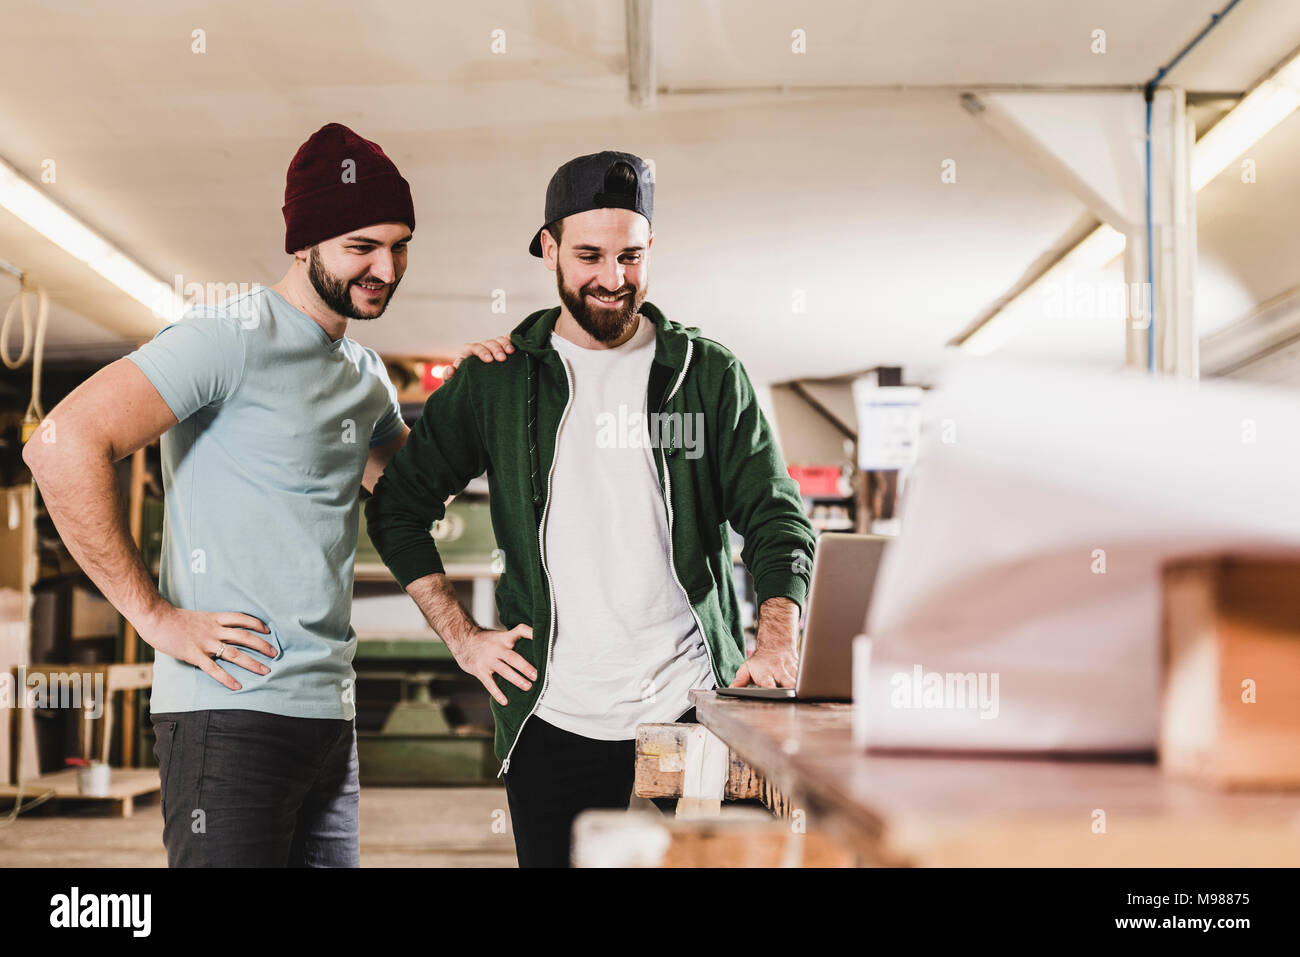 Deux smiling young men looking at laptop in workshop Photo Stock